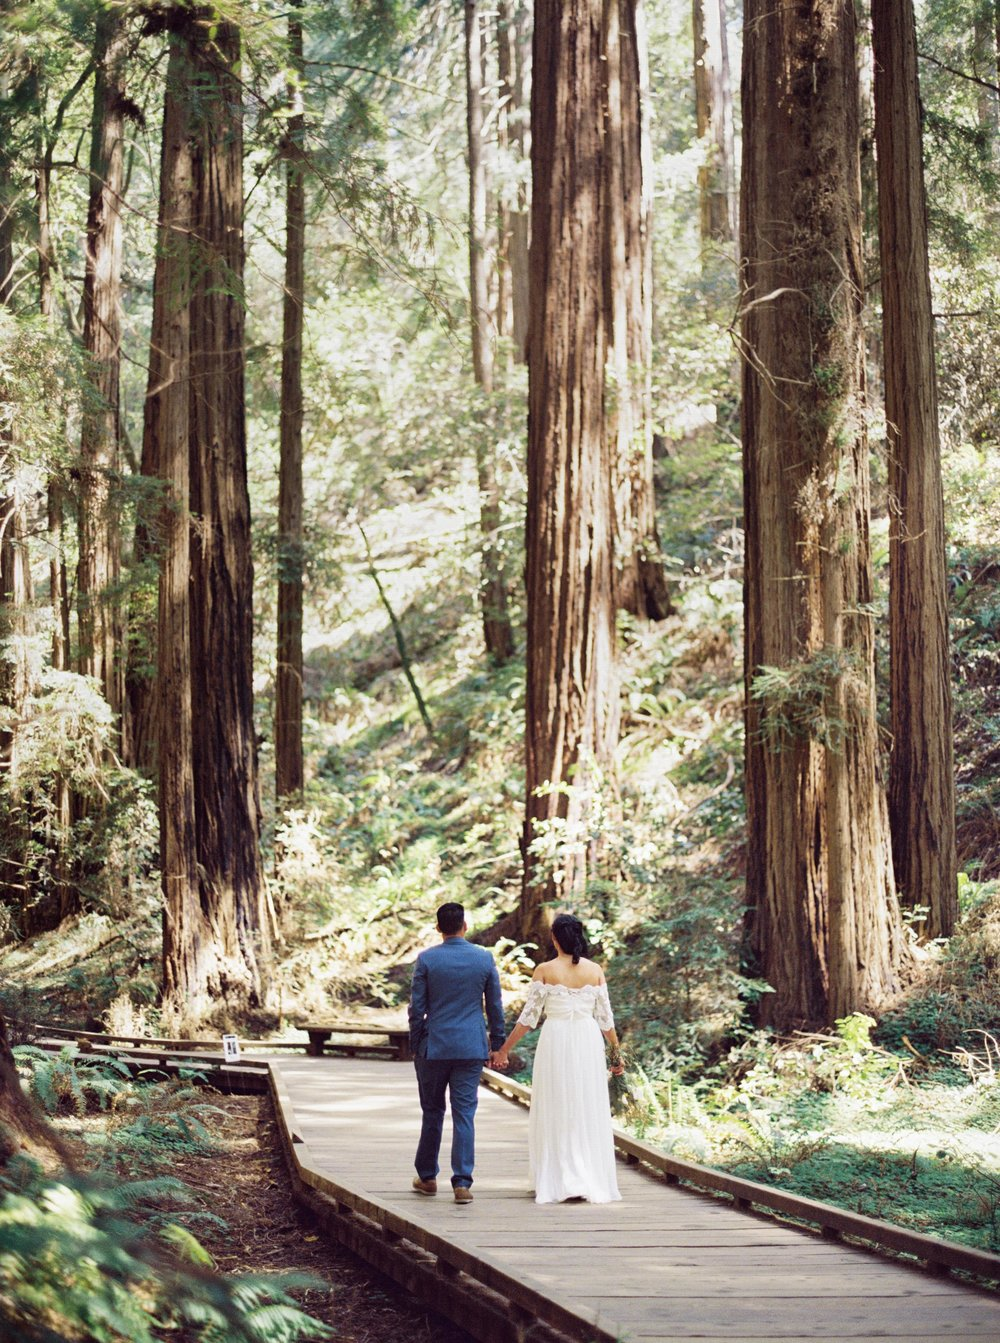 016_Krysten-Crebin-Muir-Woods-Elopement-Wedding-Photographer.jpg